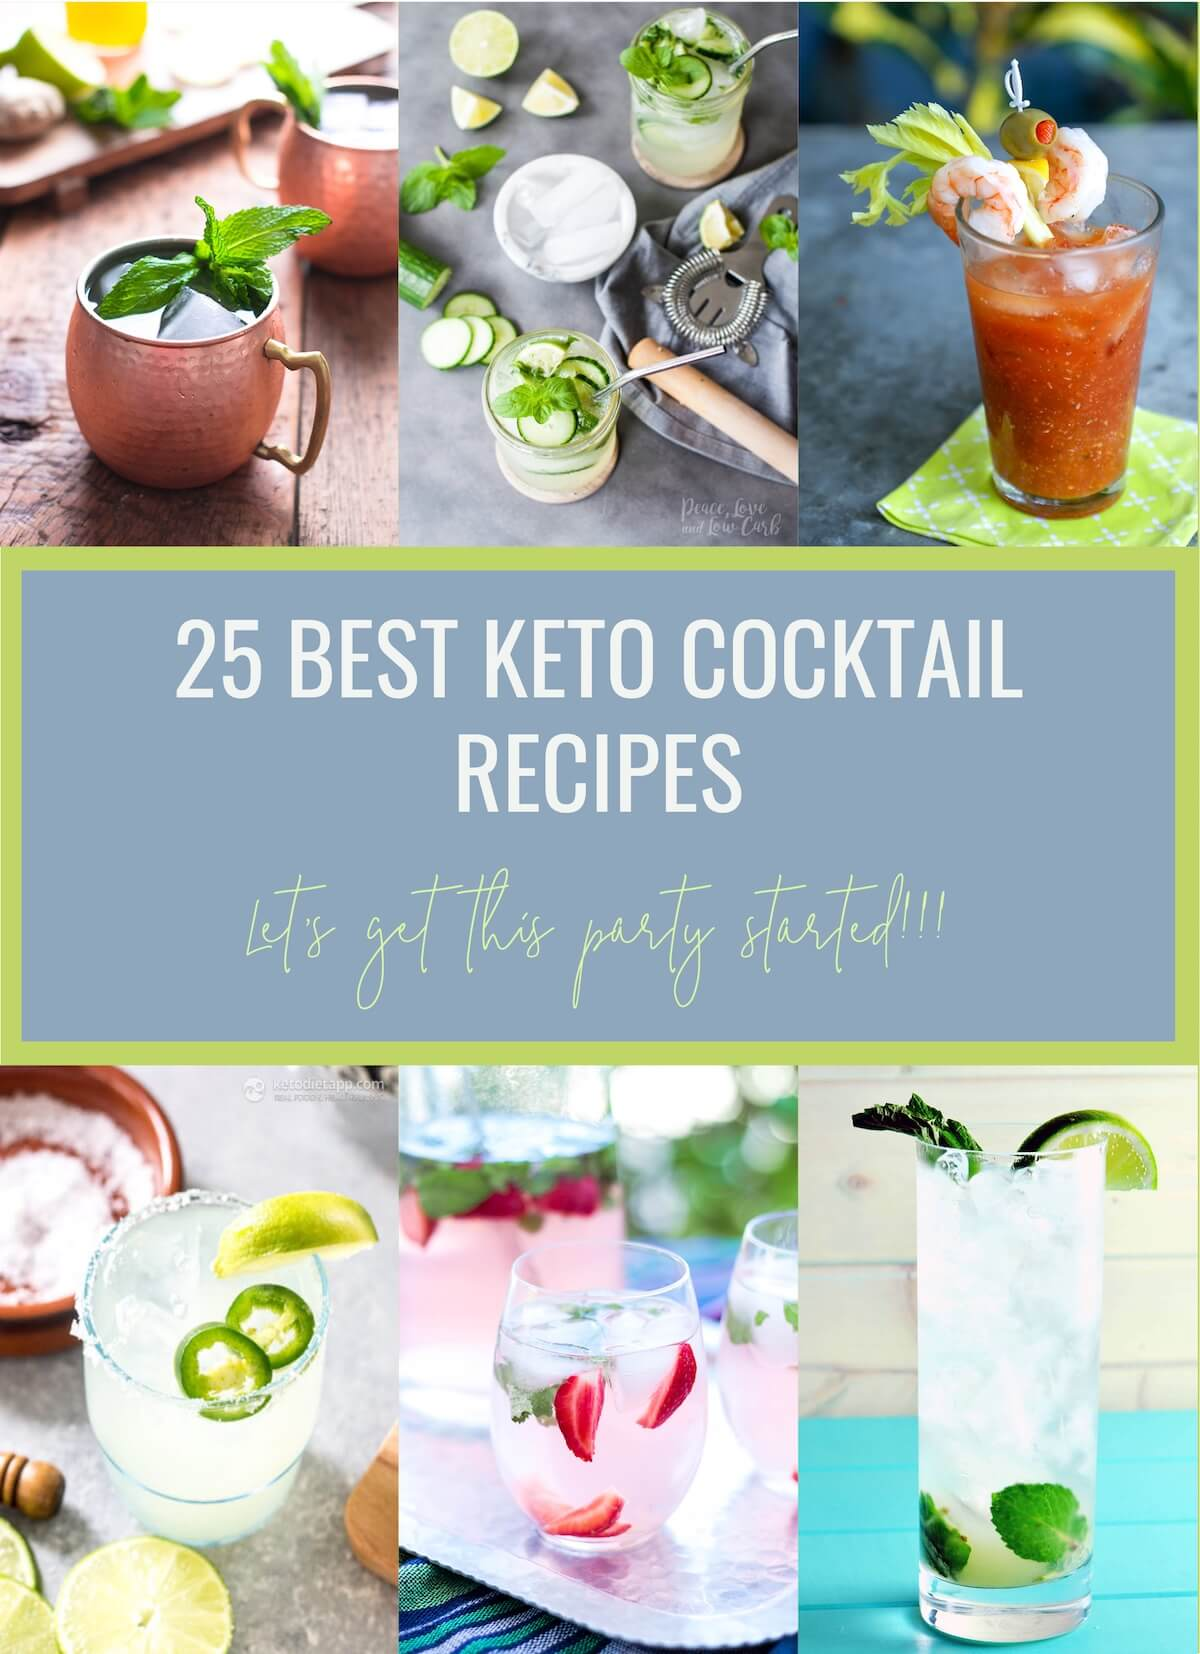 25 Best Ideas About Mac Makeup Artists On Pinterest: 25 Best Keto Cocktail Recipes - Low Carb